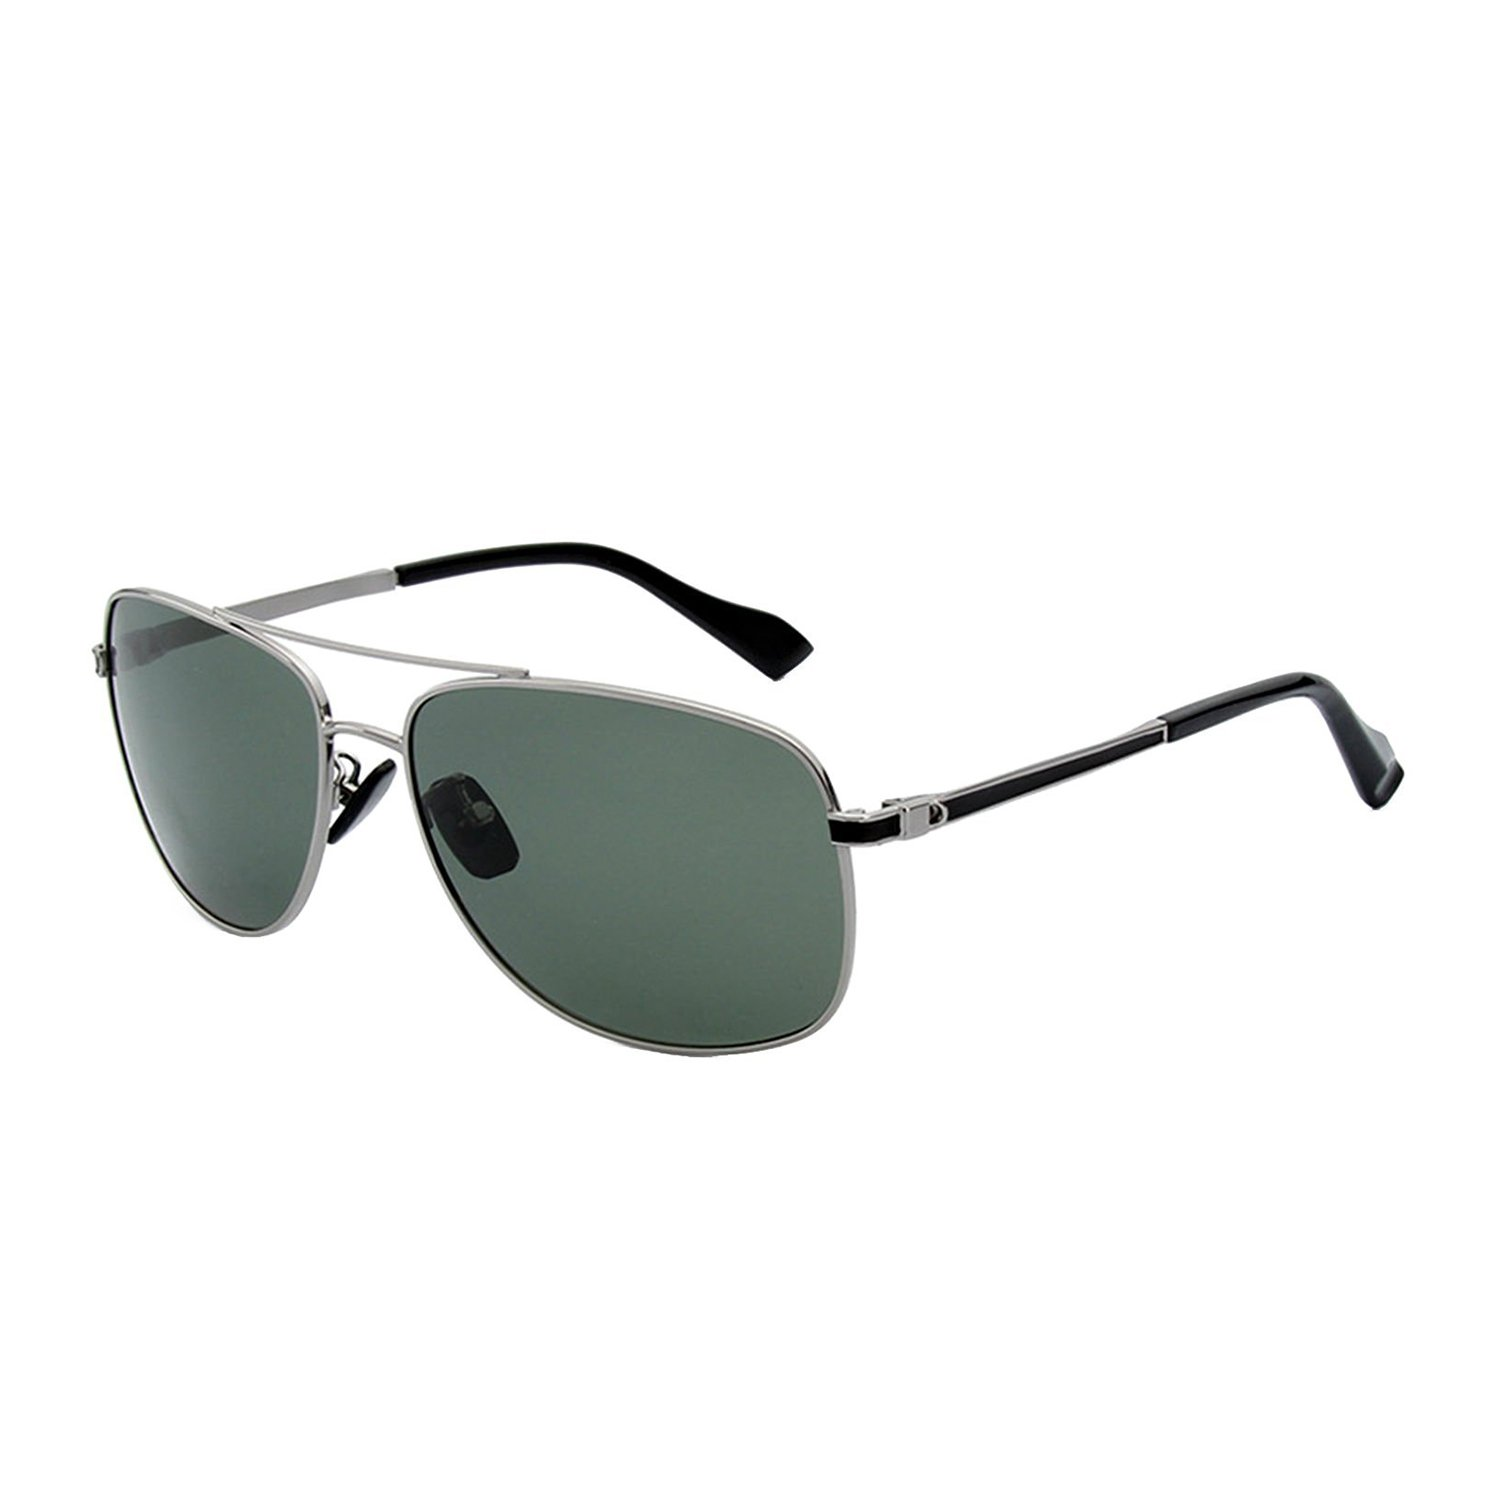 40e94ba49d3 CHB Polarized Sunglasses Aviator Metal Frame Light-weighted UV400  Protection Men s With Case (silver 2)  Amazon.co.uk  Clothing